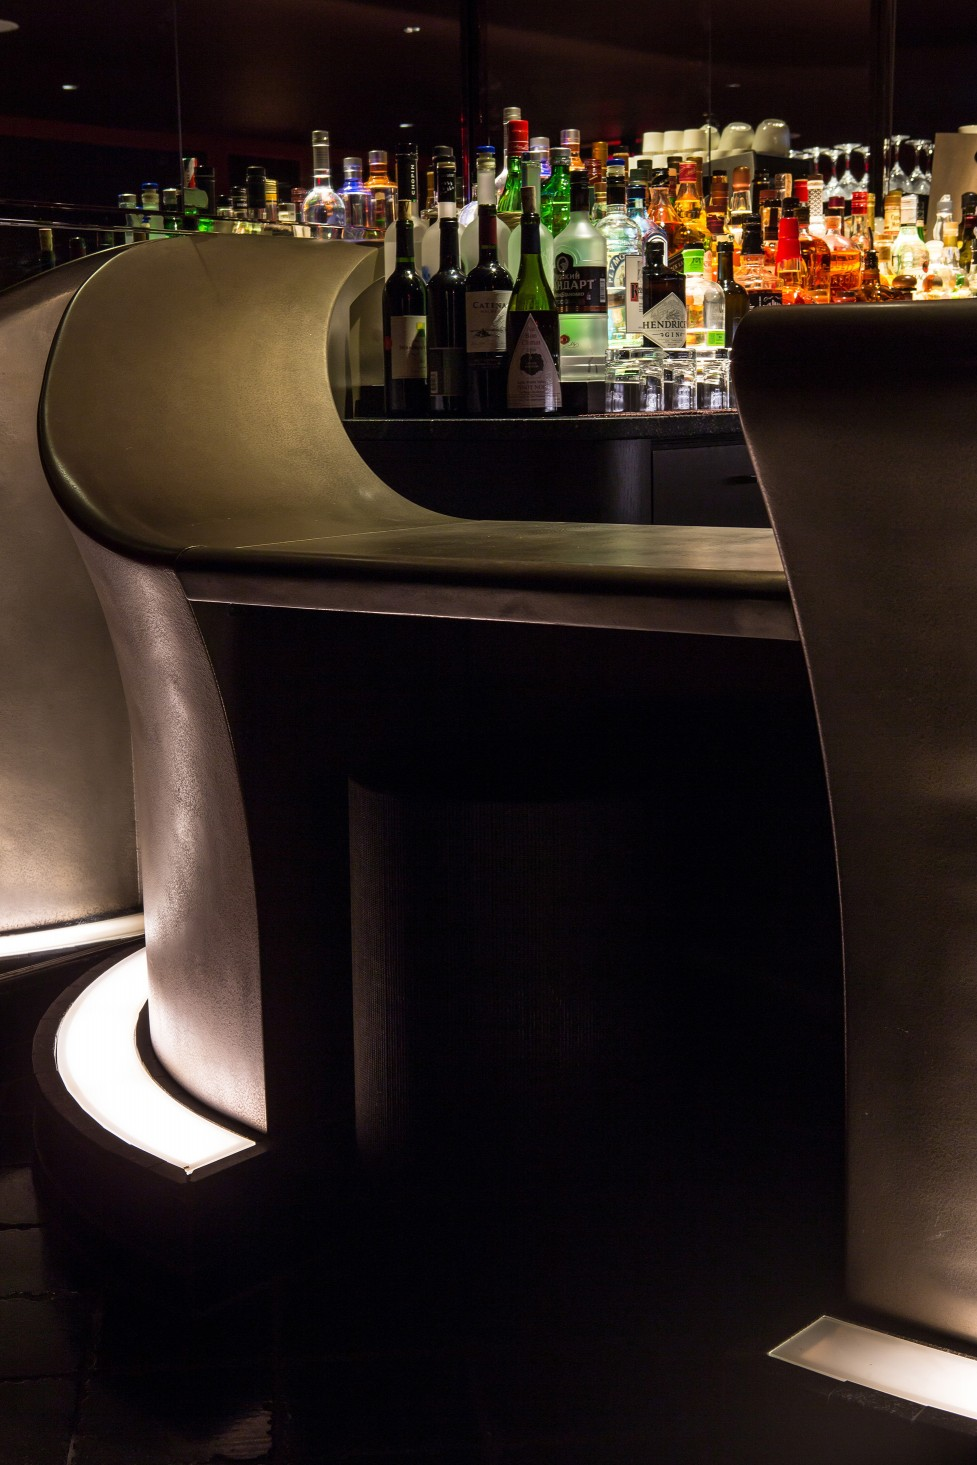 To illuminate the bar area, CM Kling used 2700K Lumentask fixtures.